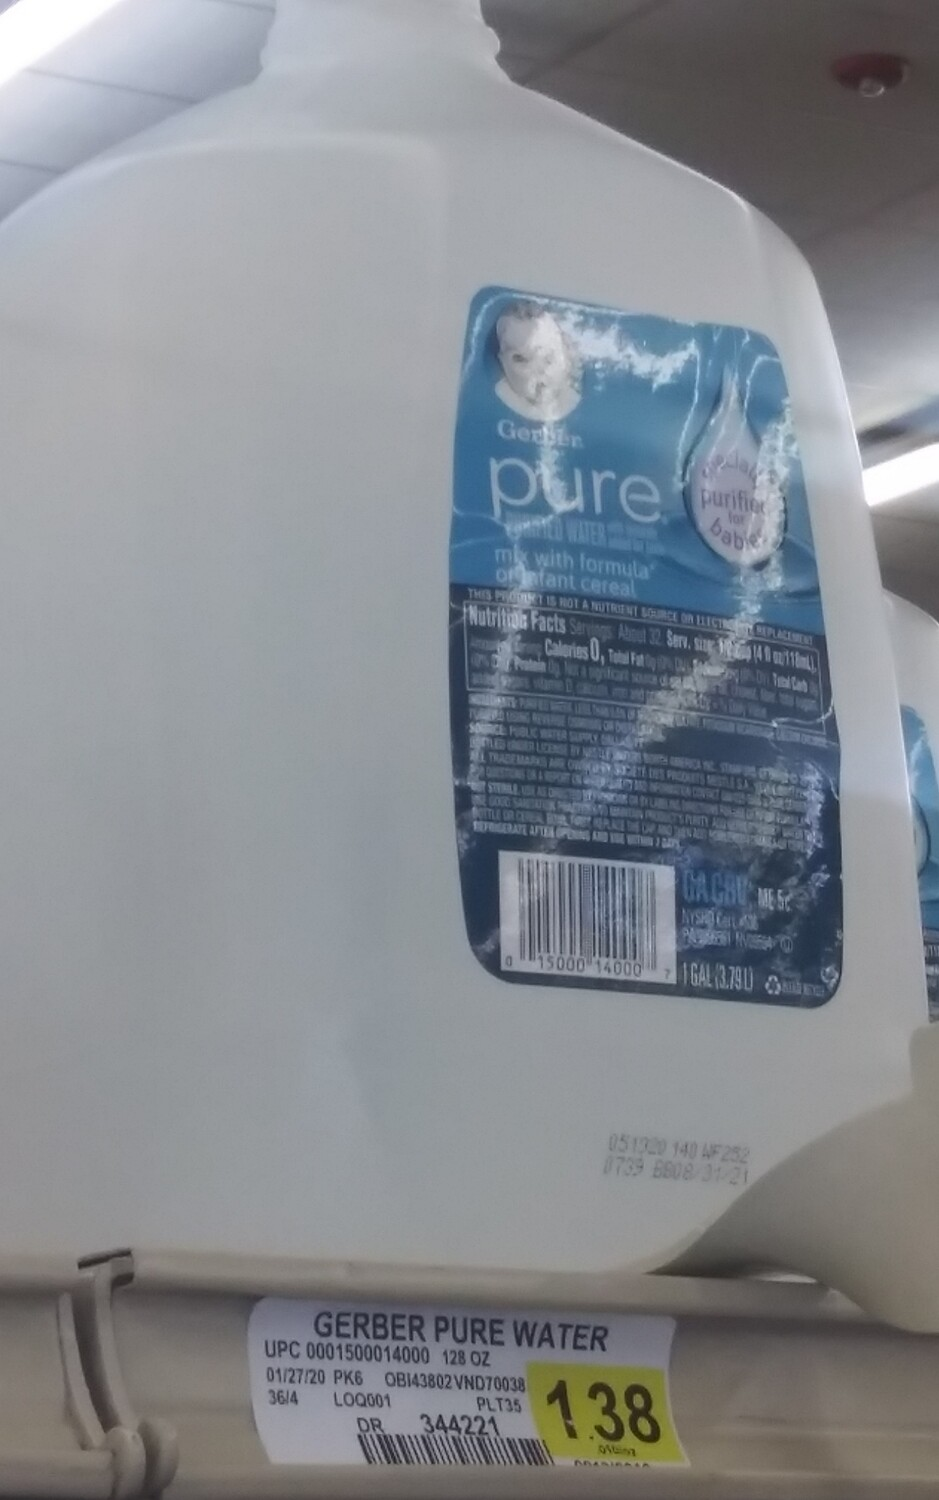 Cash Saver: Gerber Pure Water